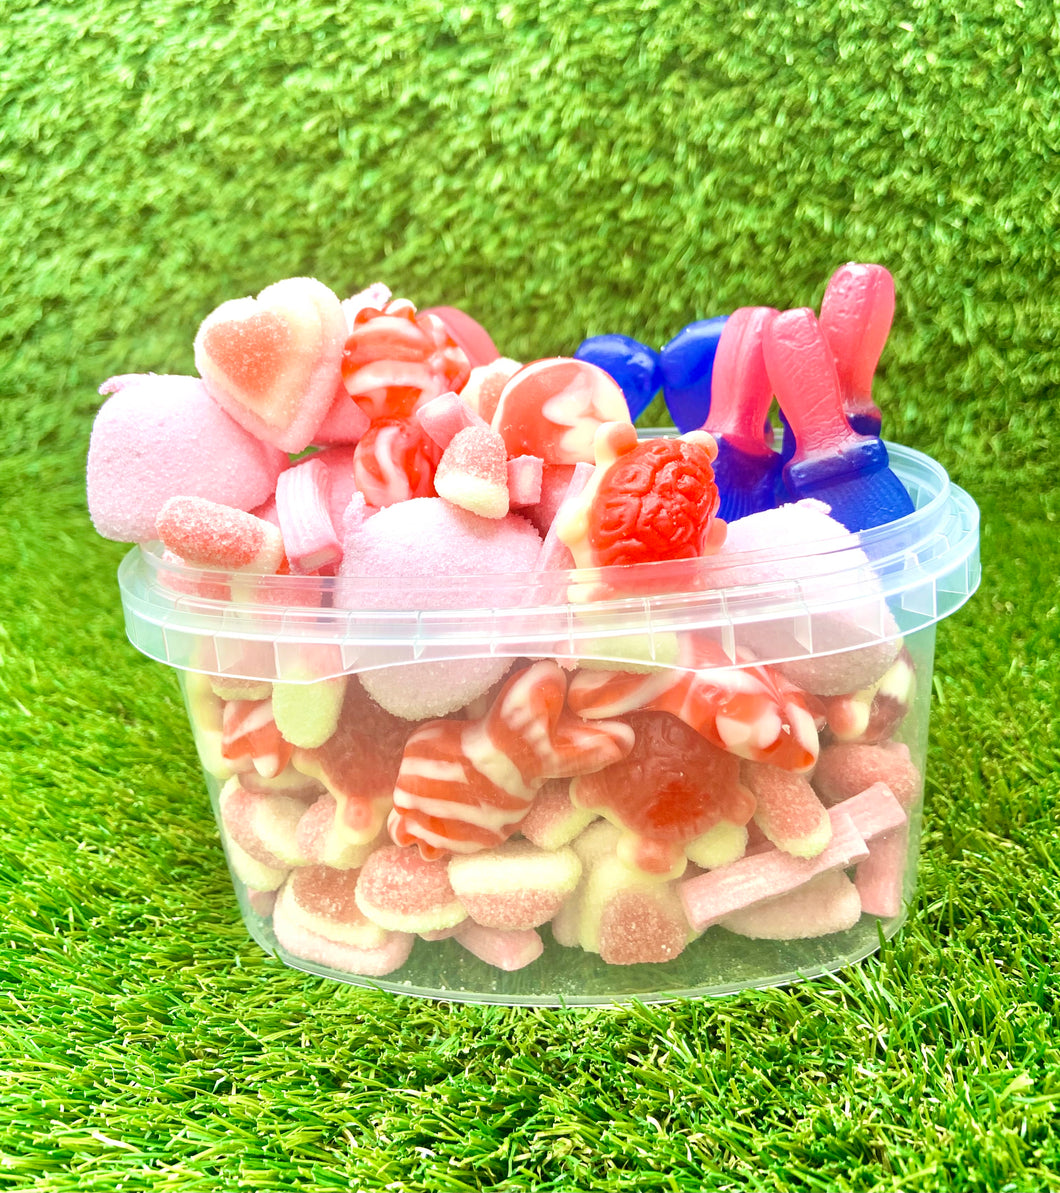 The Pink Sweet Mix 500g